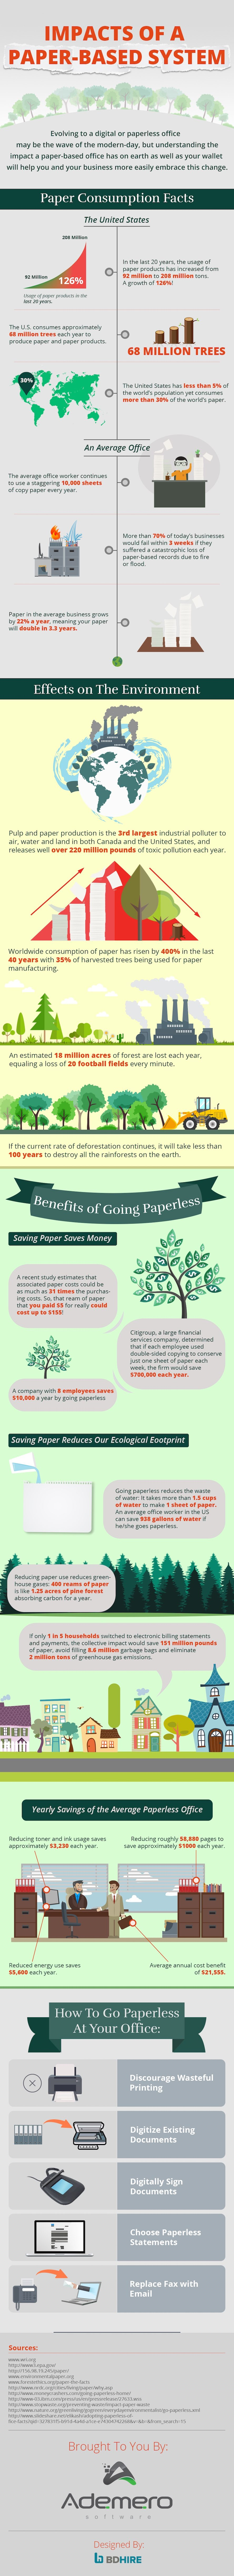 paperless, infographic, reader submitted content, paper production, paper consumption